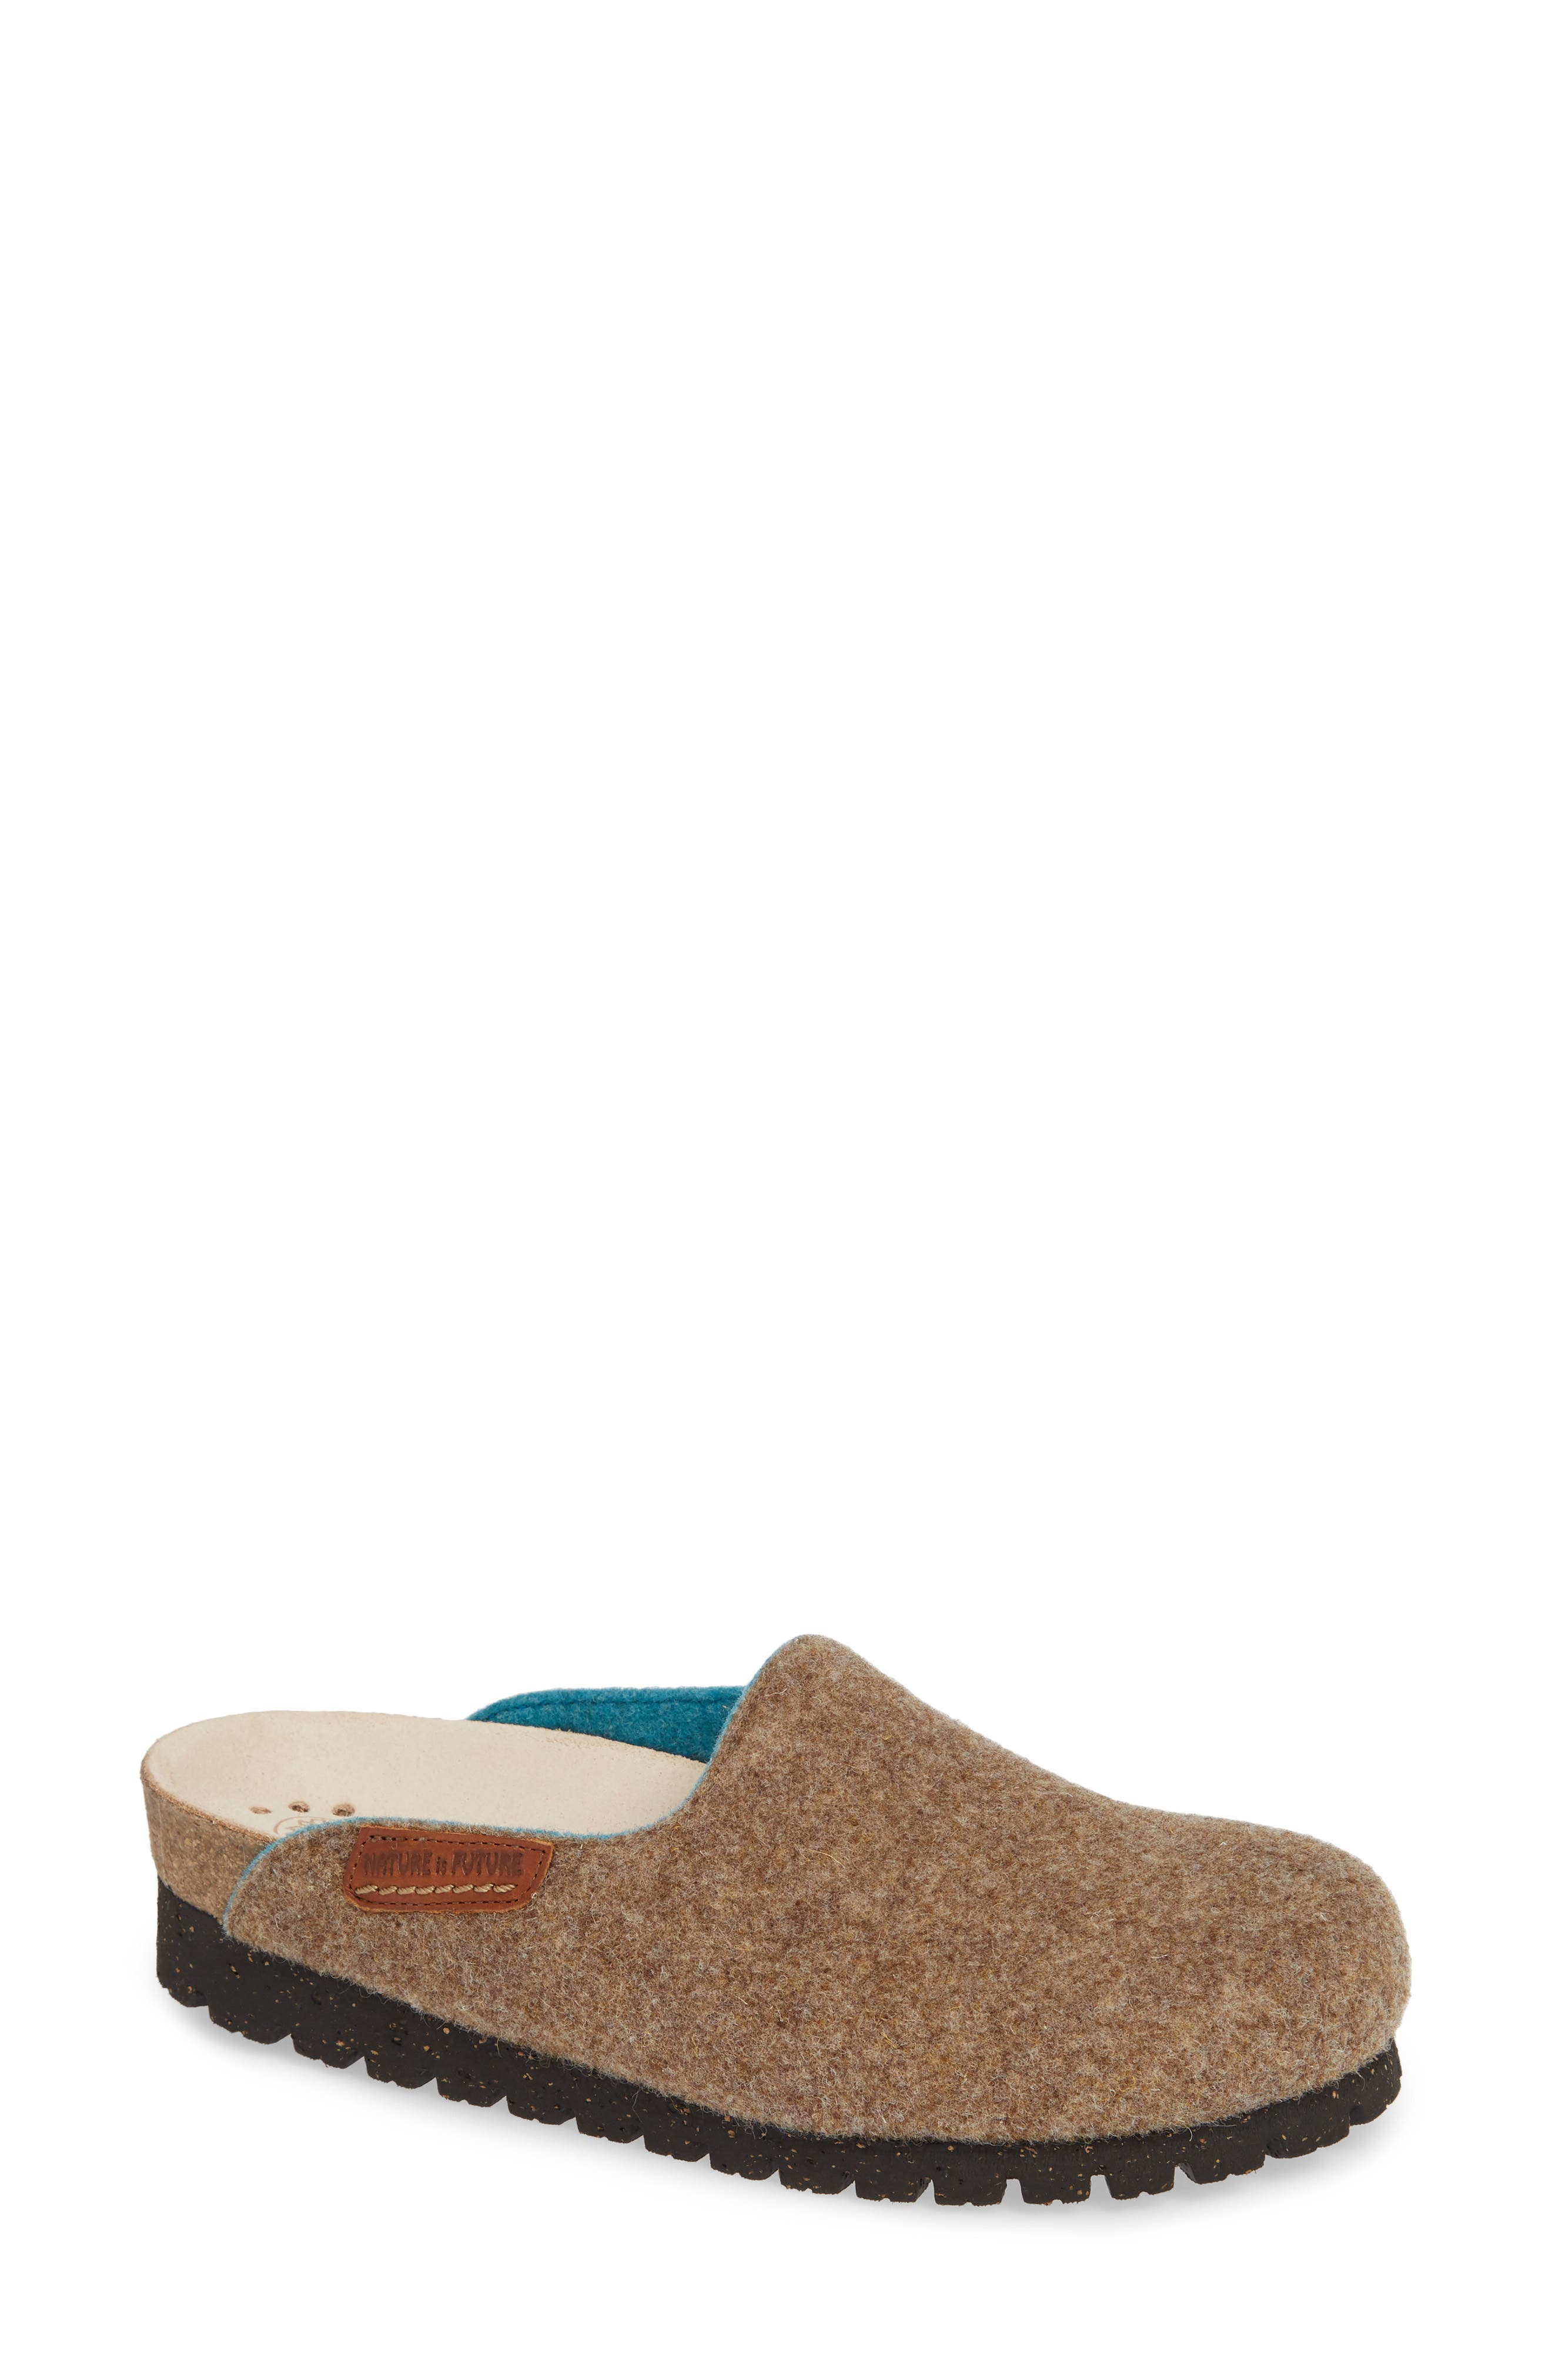 Mephisto Thea Boiled Wool Clog, Beige